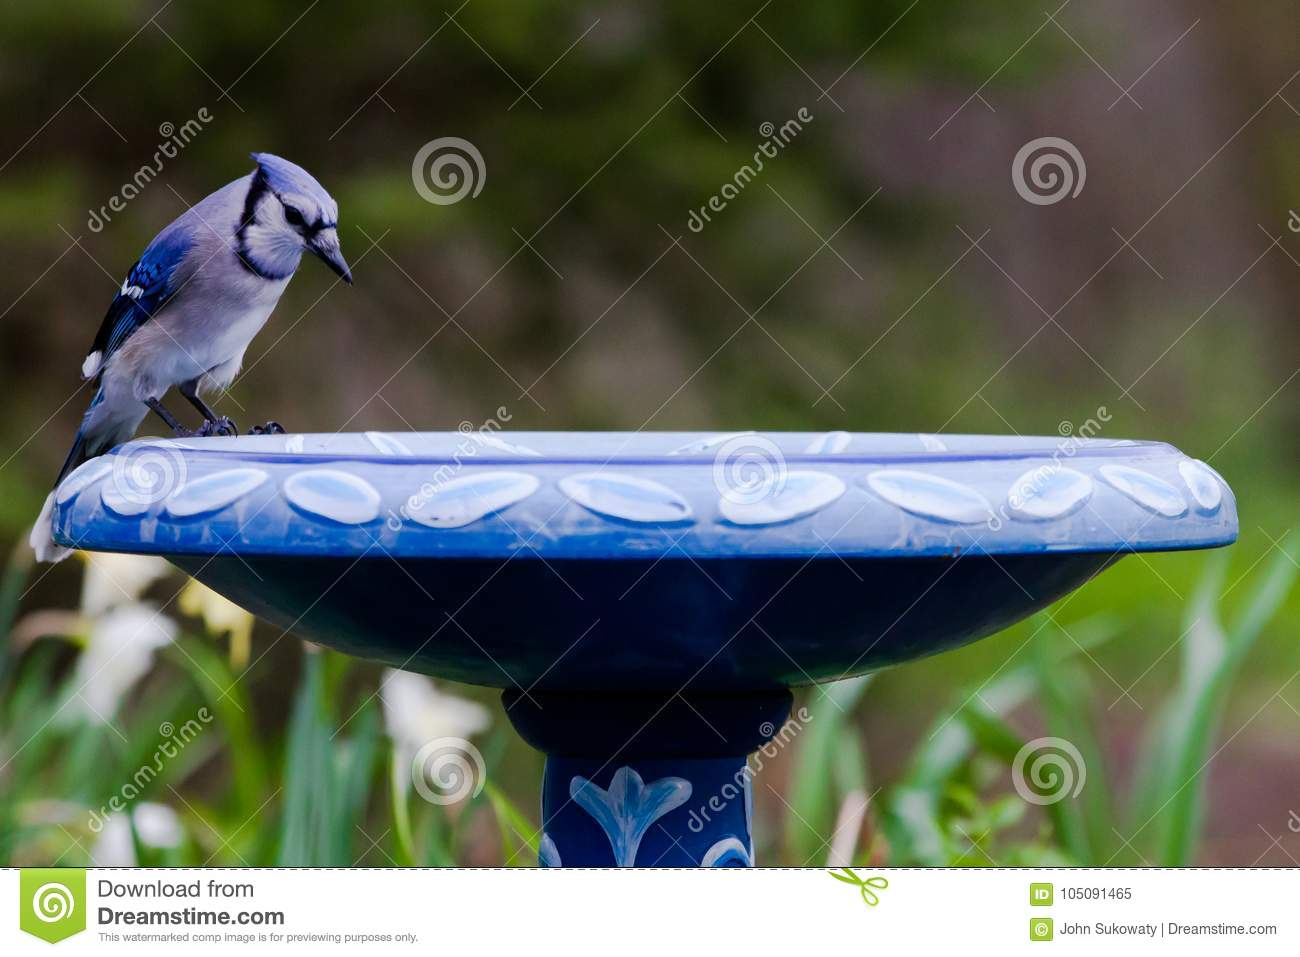 Blue Jay At Bird Bath In Spring Green Flowers Colors Stock Image